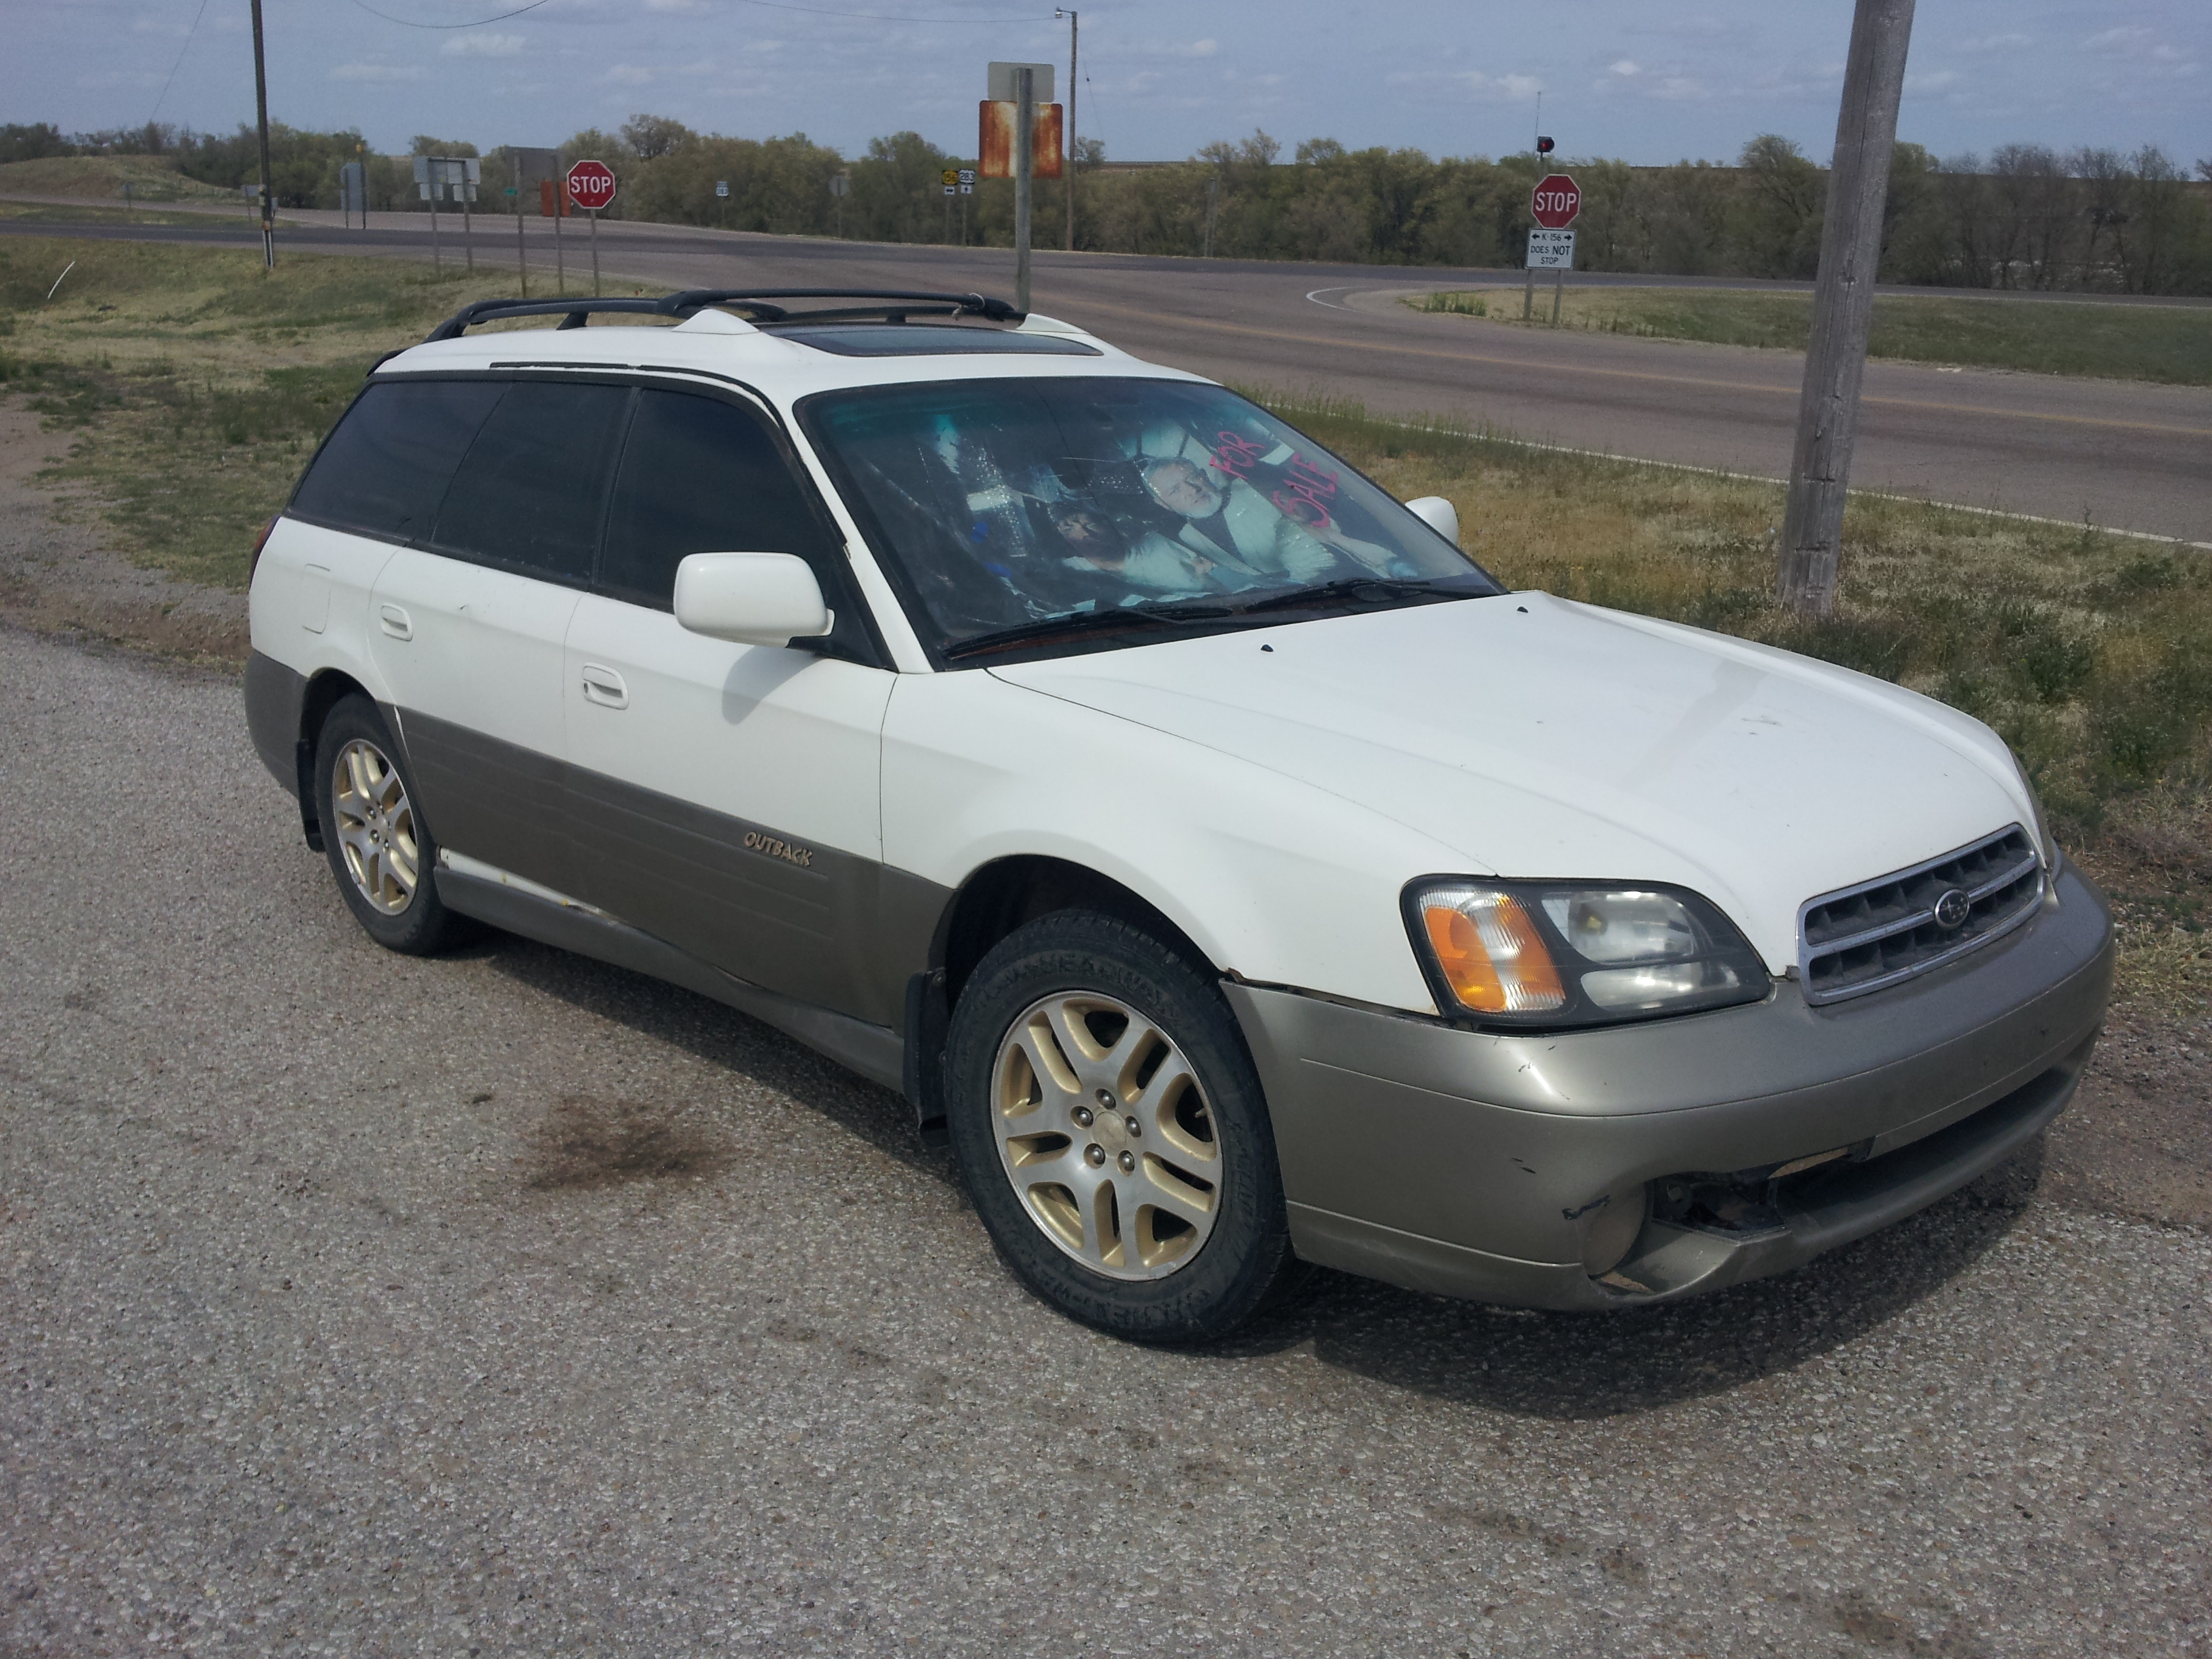 Cash for Cars Westland, MI | Sell Your Junk Car | The Clunker Junker